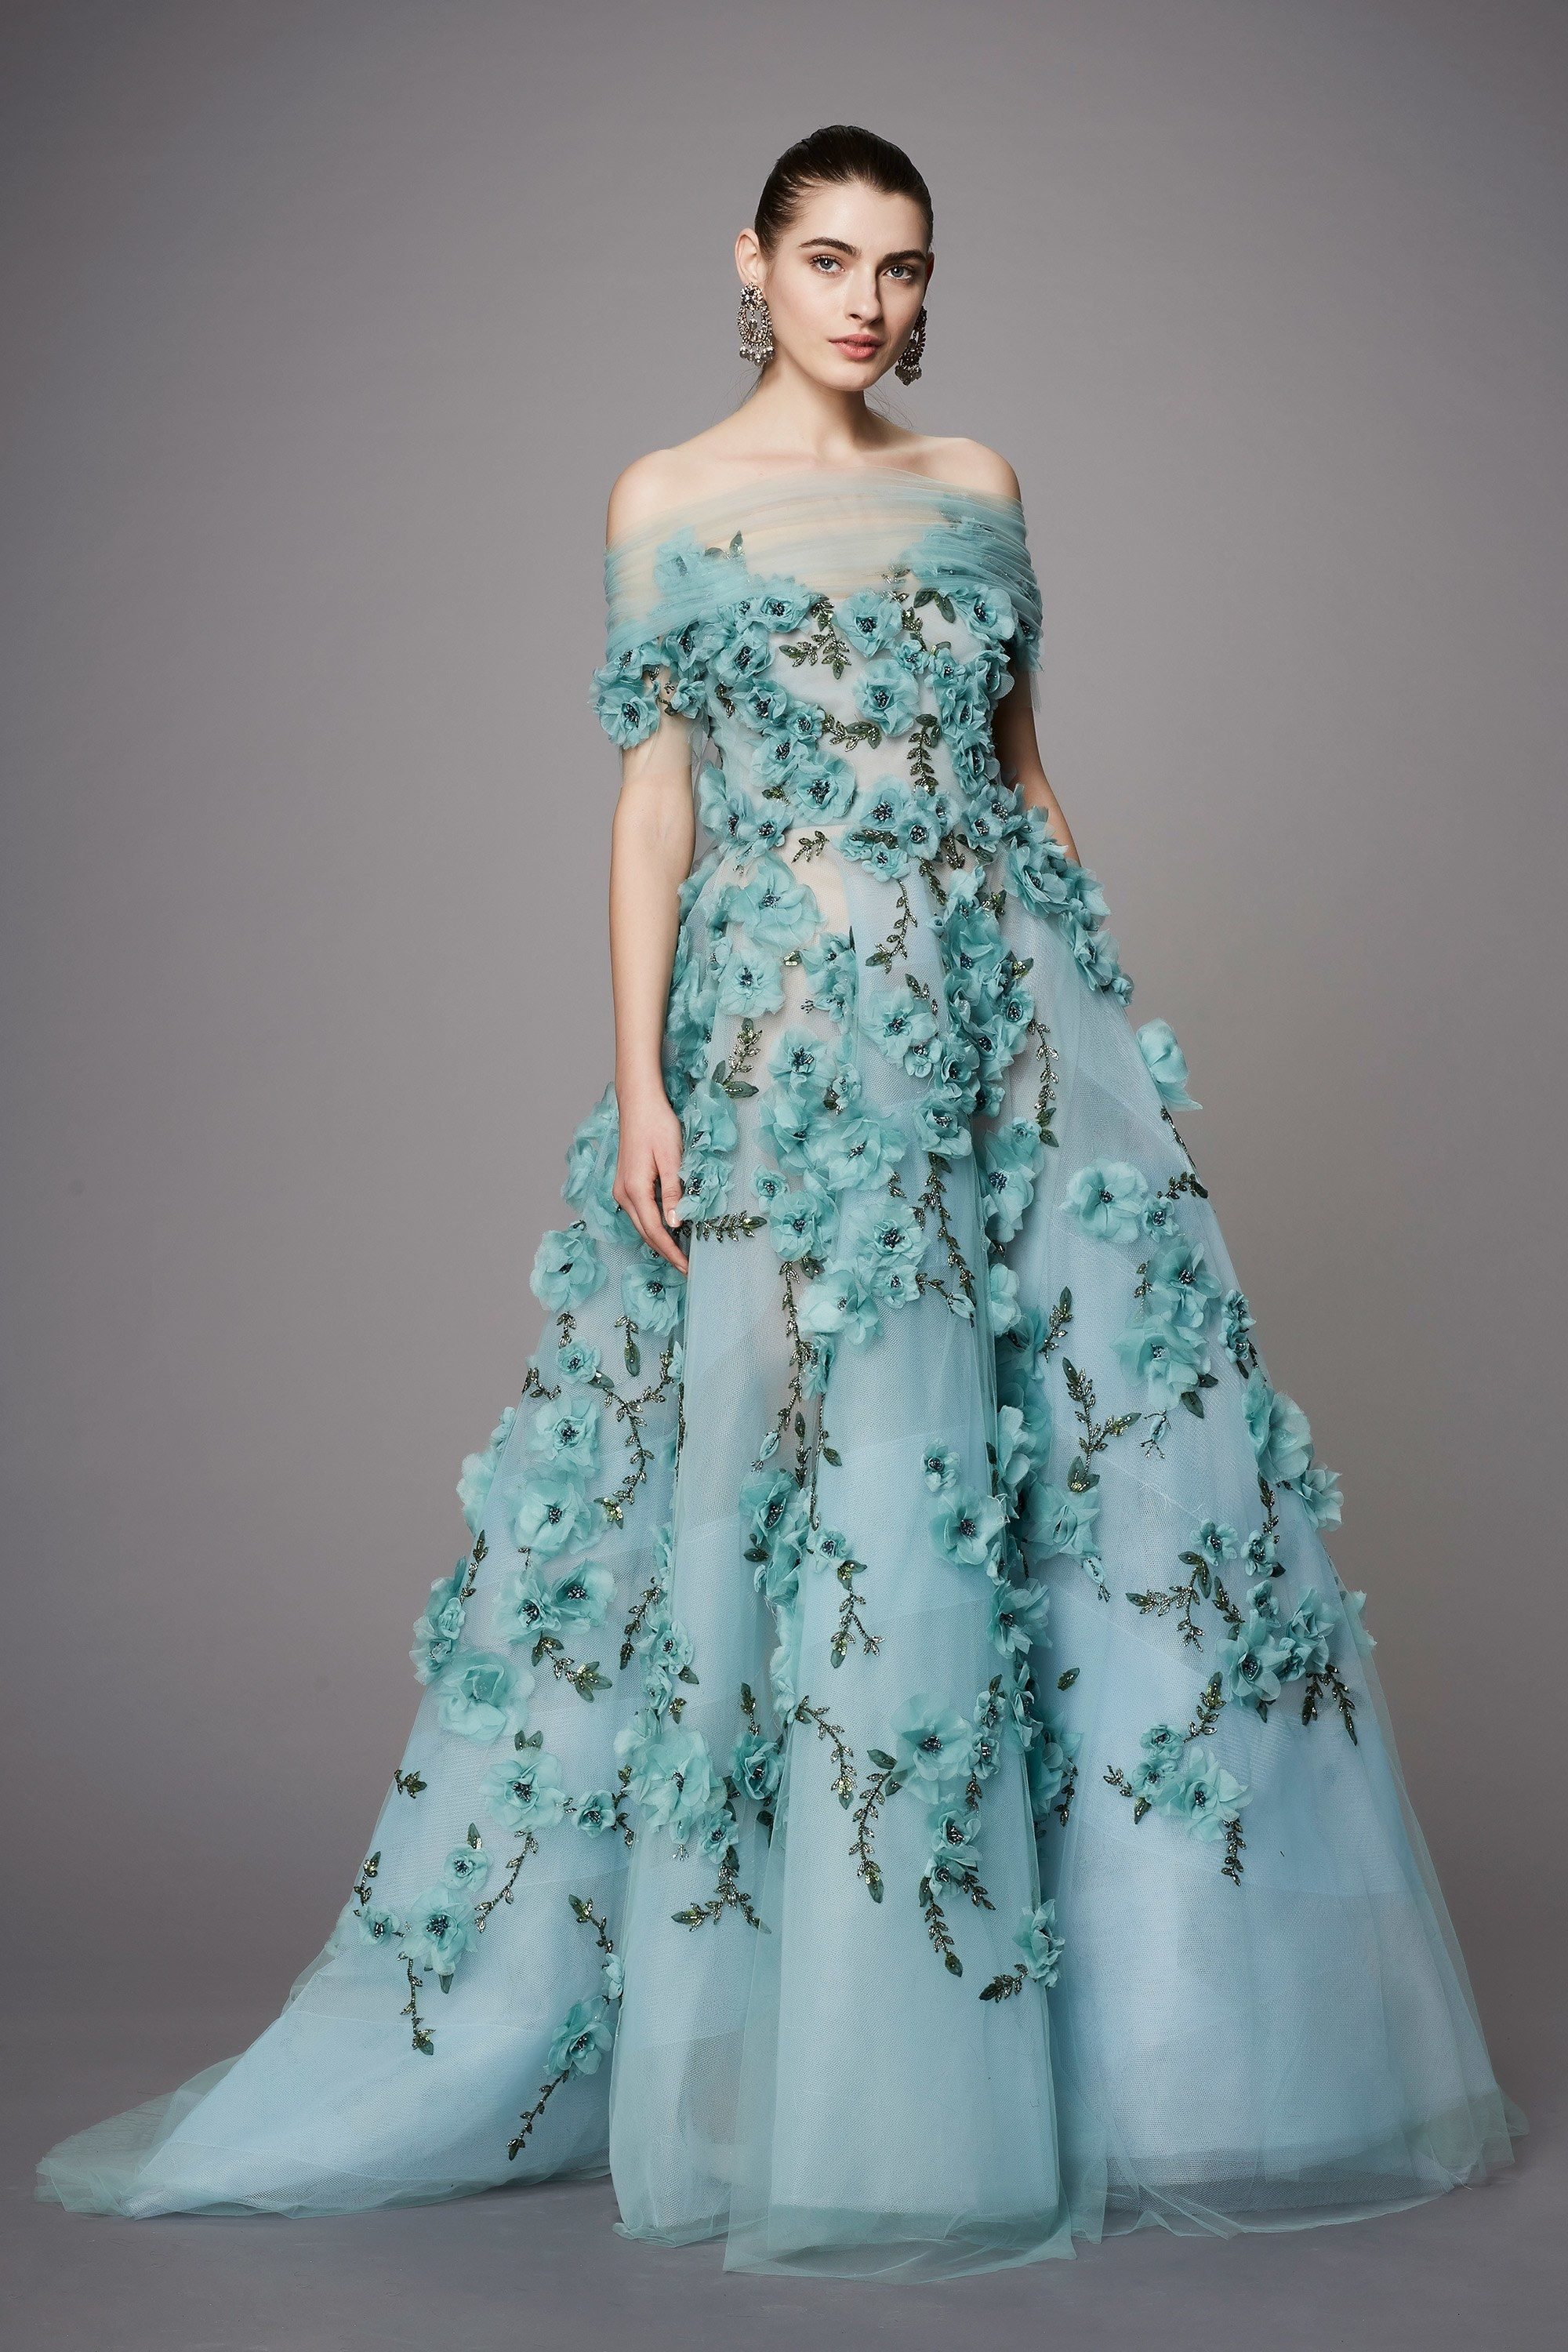 c4f1a7844d Marchesa Pre Fall 2017: Robin eggs blue is a lovely color! I adore the  intricate floral design! On trend off shoulder detailing